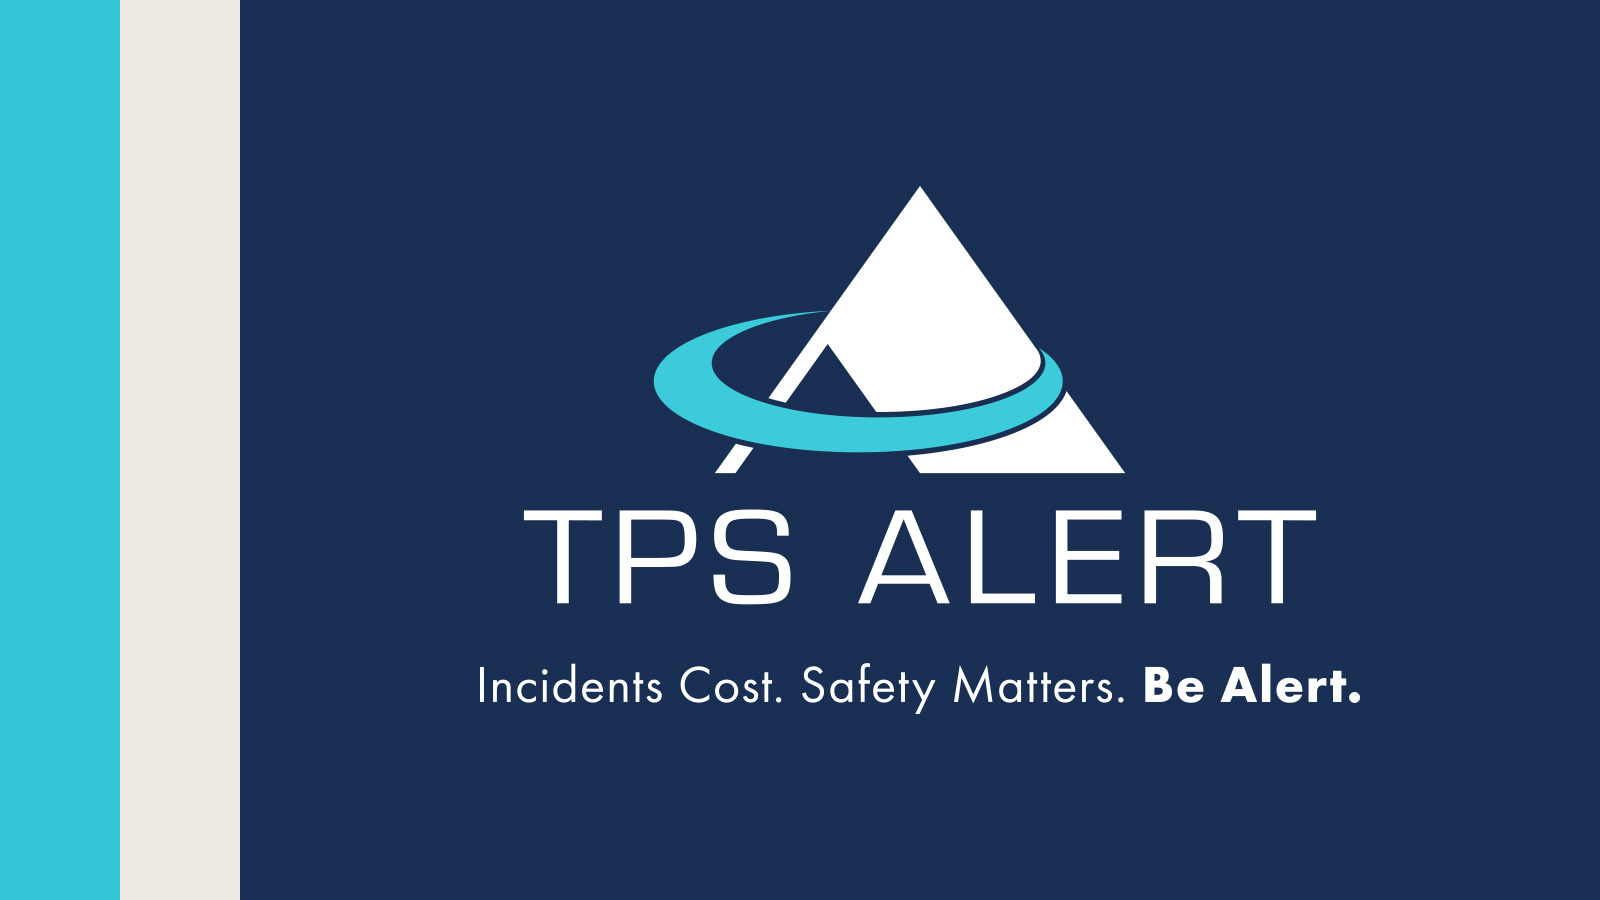 Introducing TPS Alert 3.0